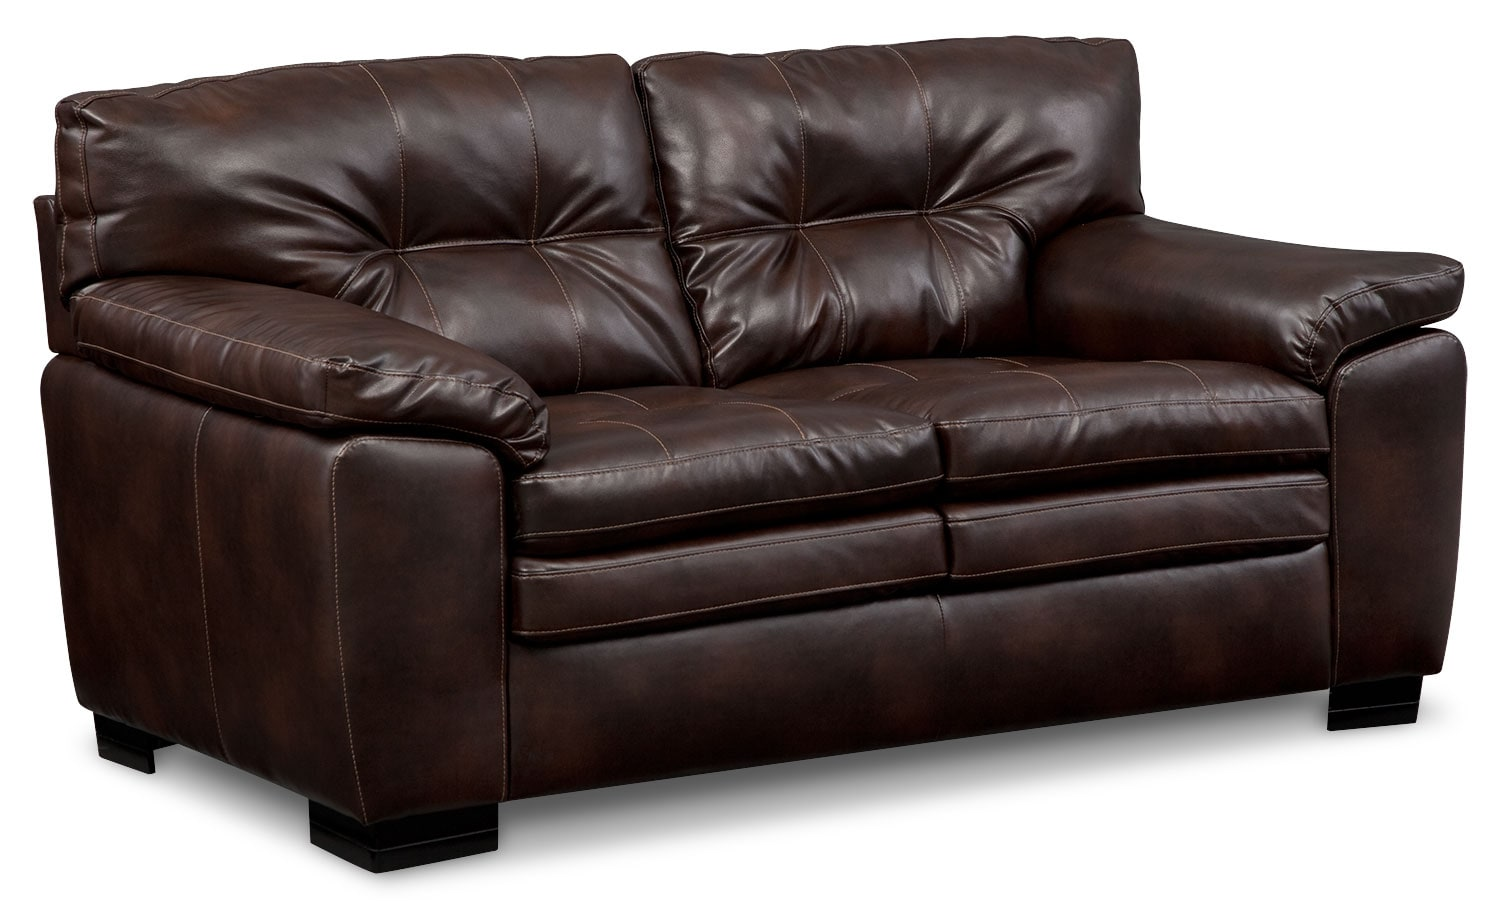 Magnum Loveseat - Brown